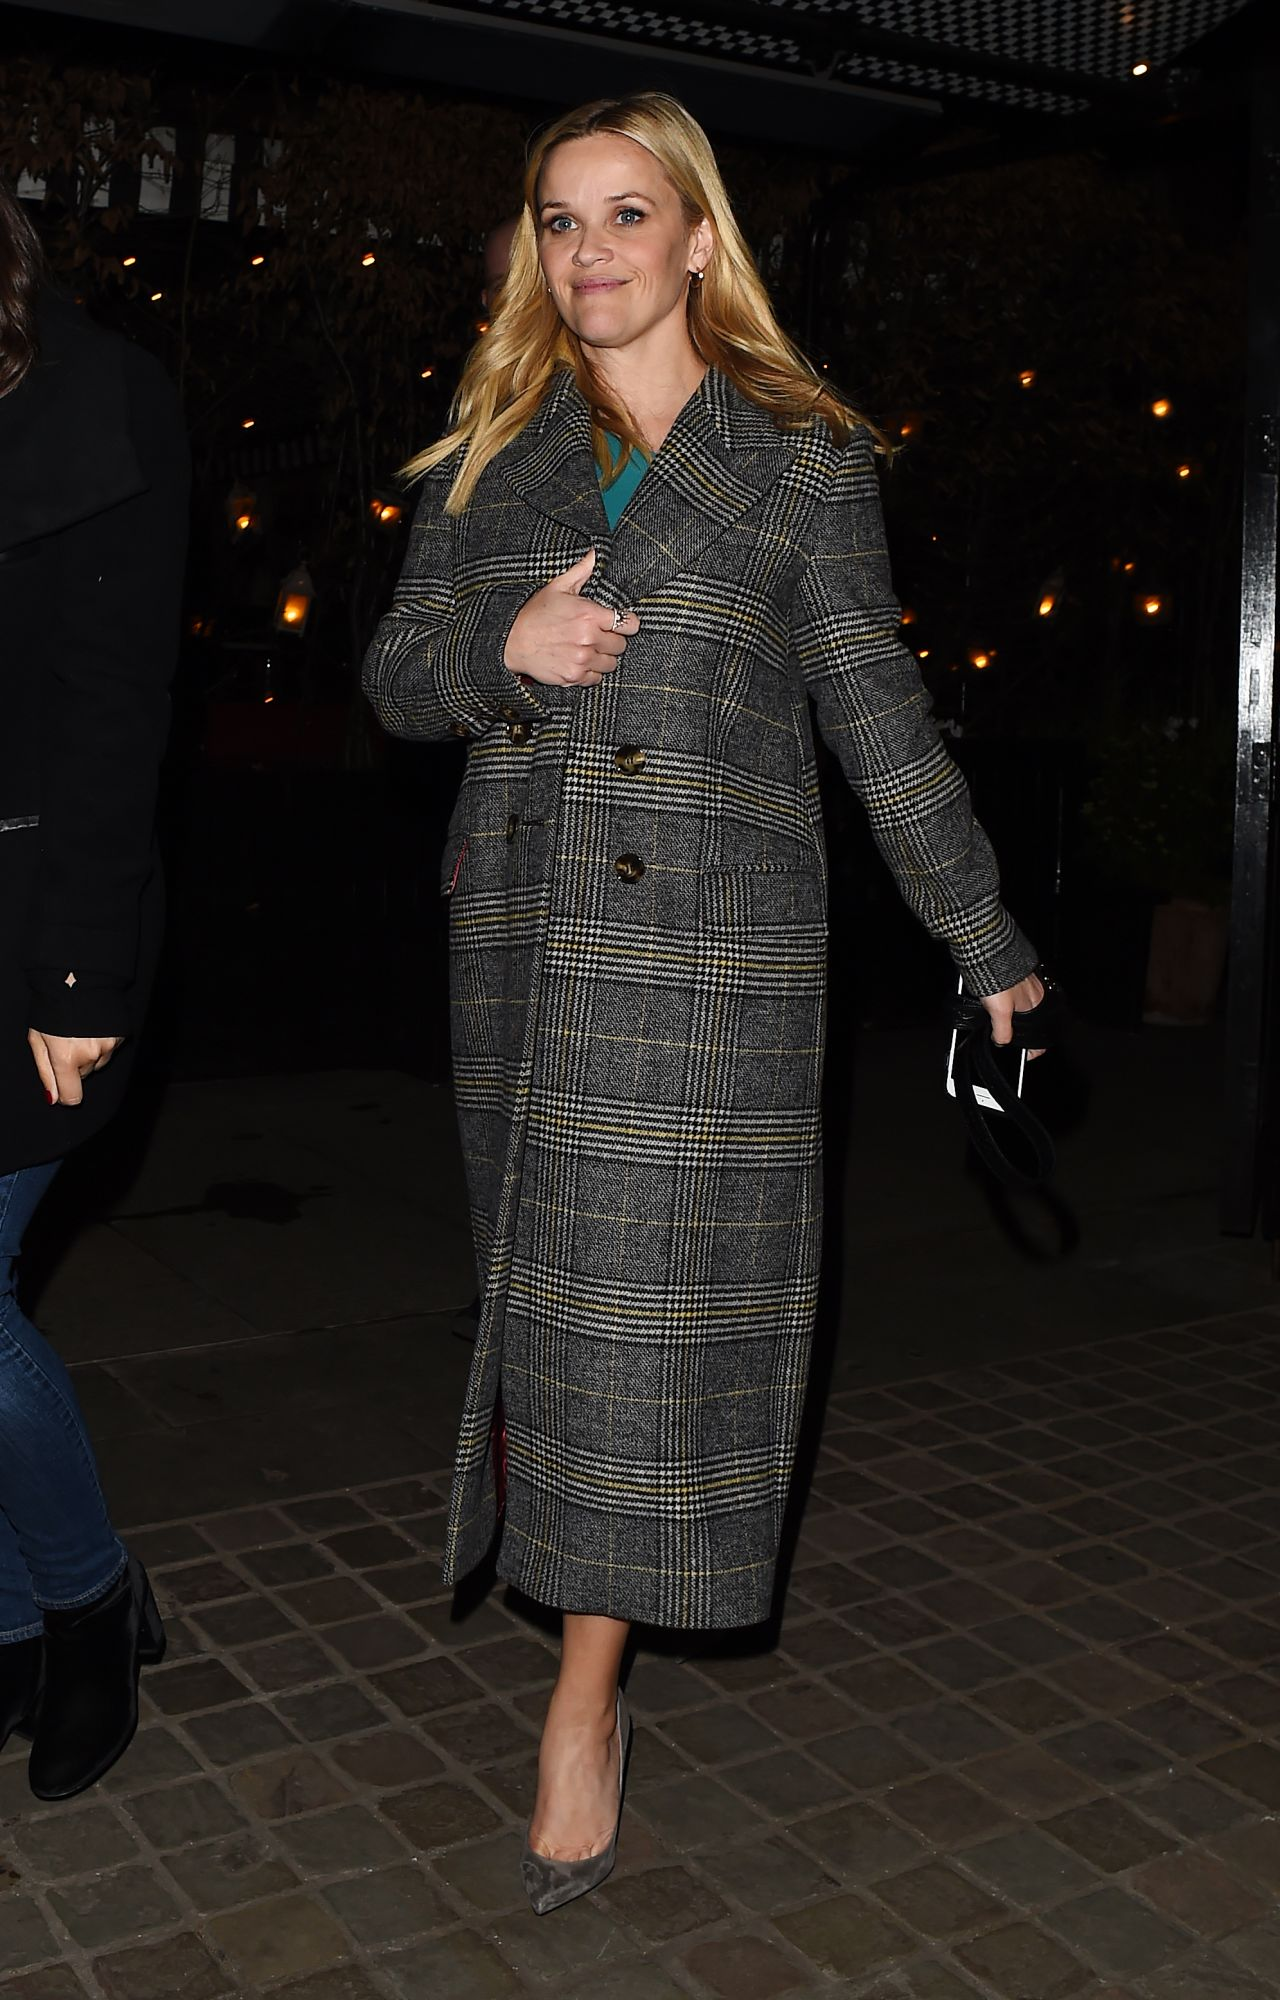 http://celebmafia.com/wp-content/uploads/2018/03/reese-witherspoon-chiltern-firehouse-in-london-03-12-2018-4.jpg